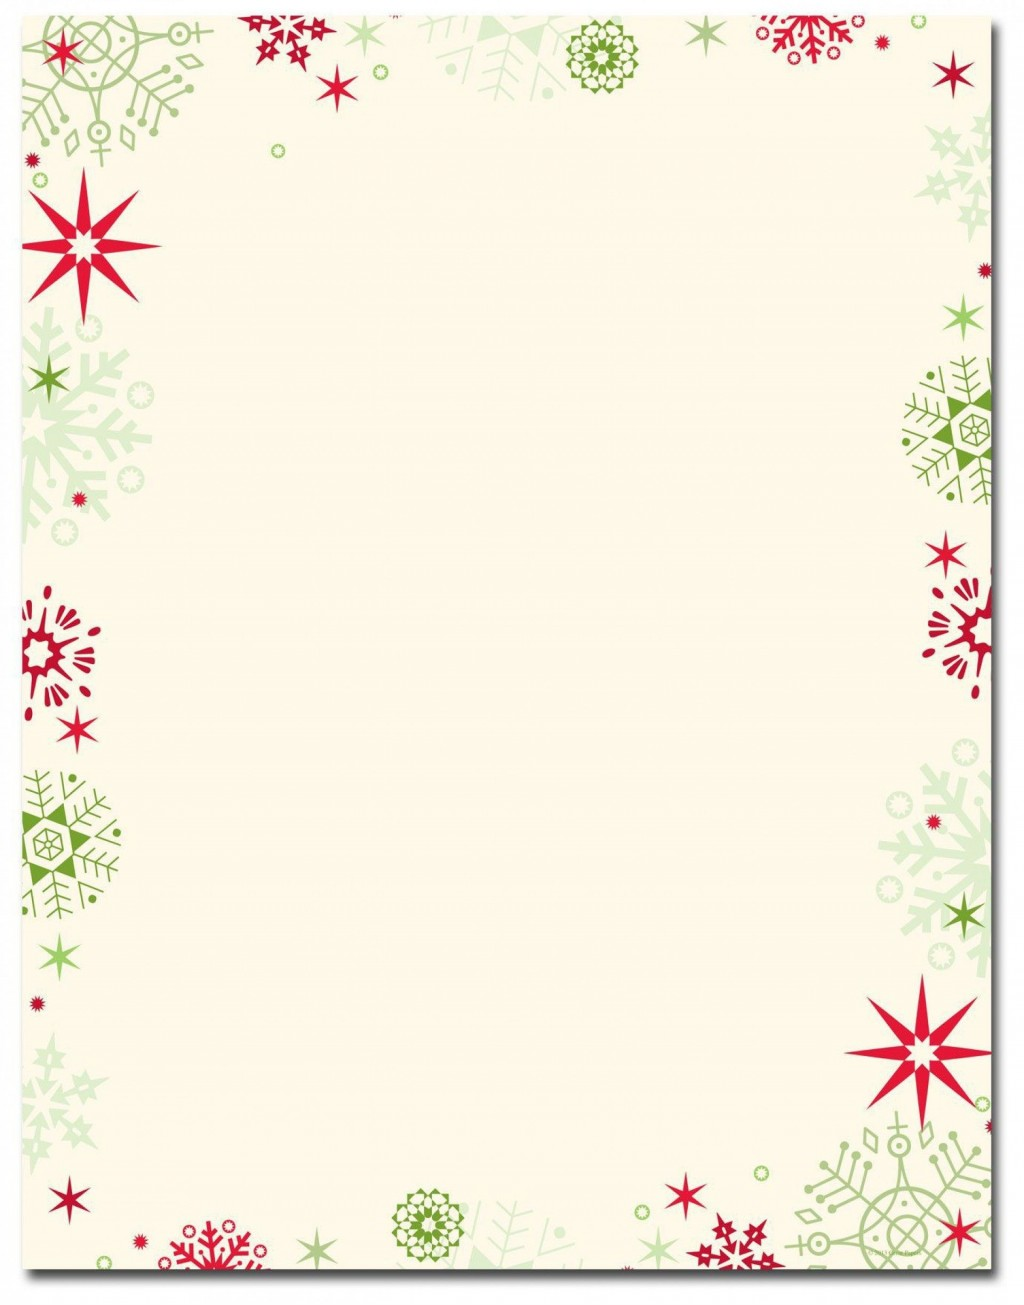 005 Formidable Free Christian Christma Stationery Template For Word Concept Large